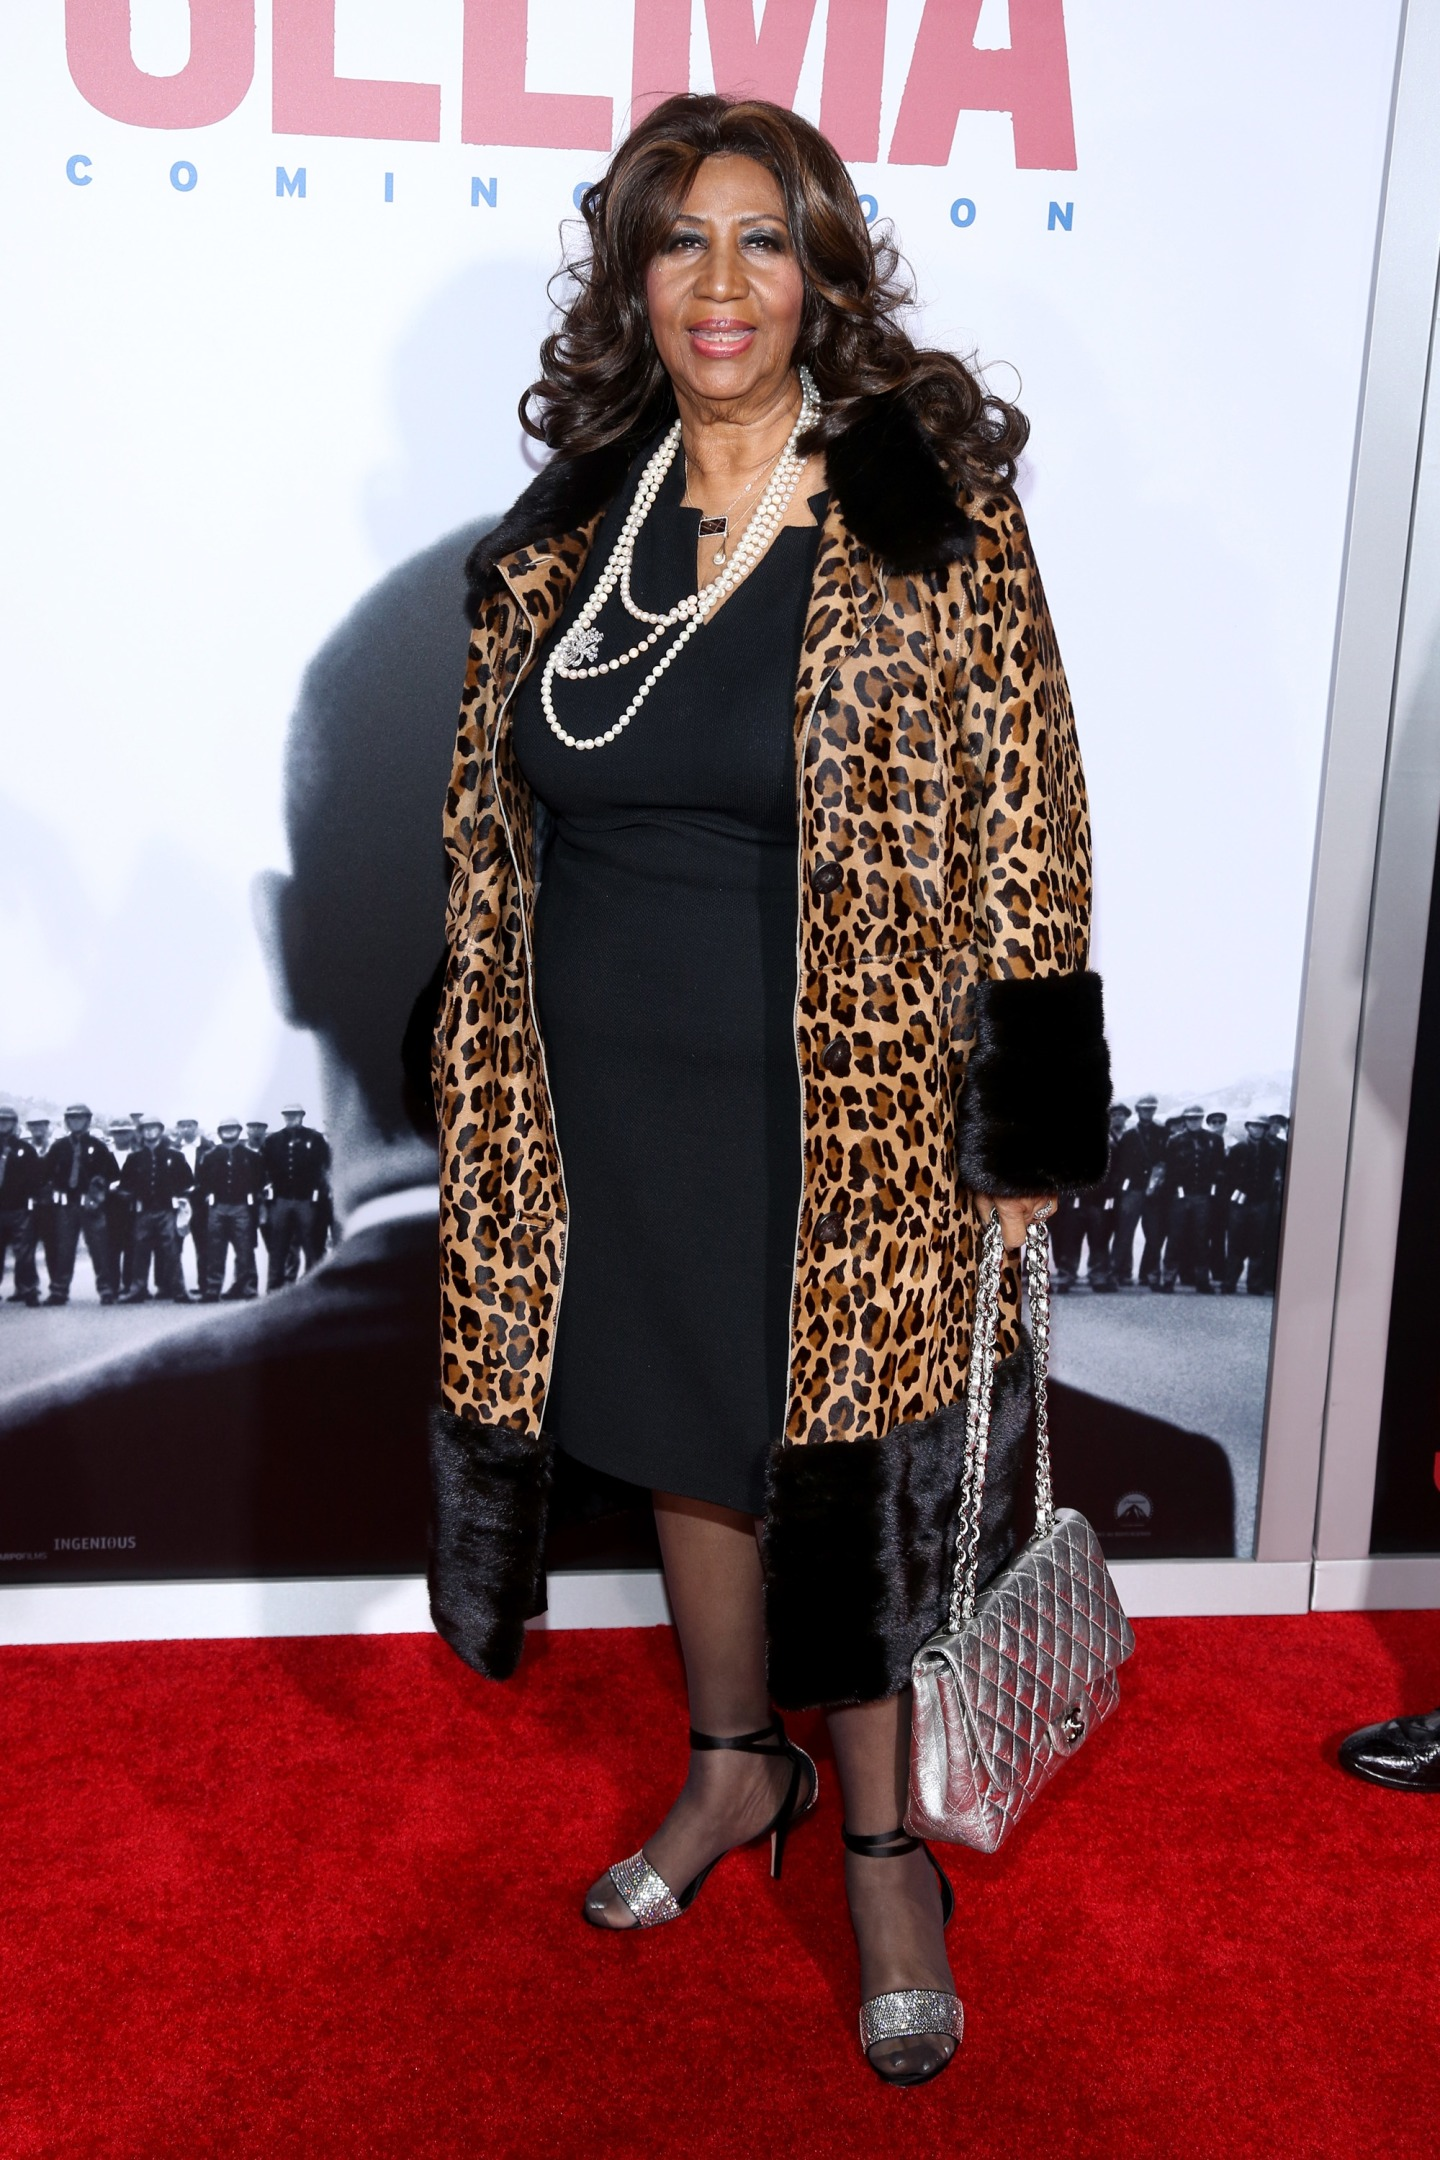 Remembering Aretha Franklin's elegantly over-the-top personal style